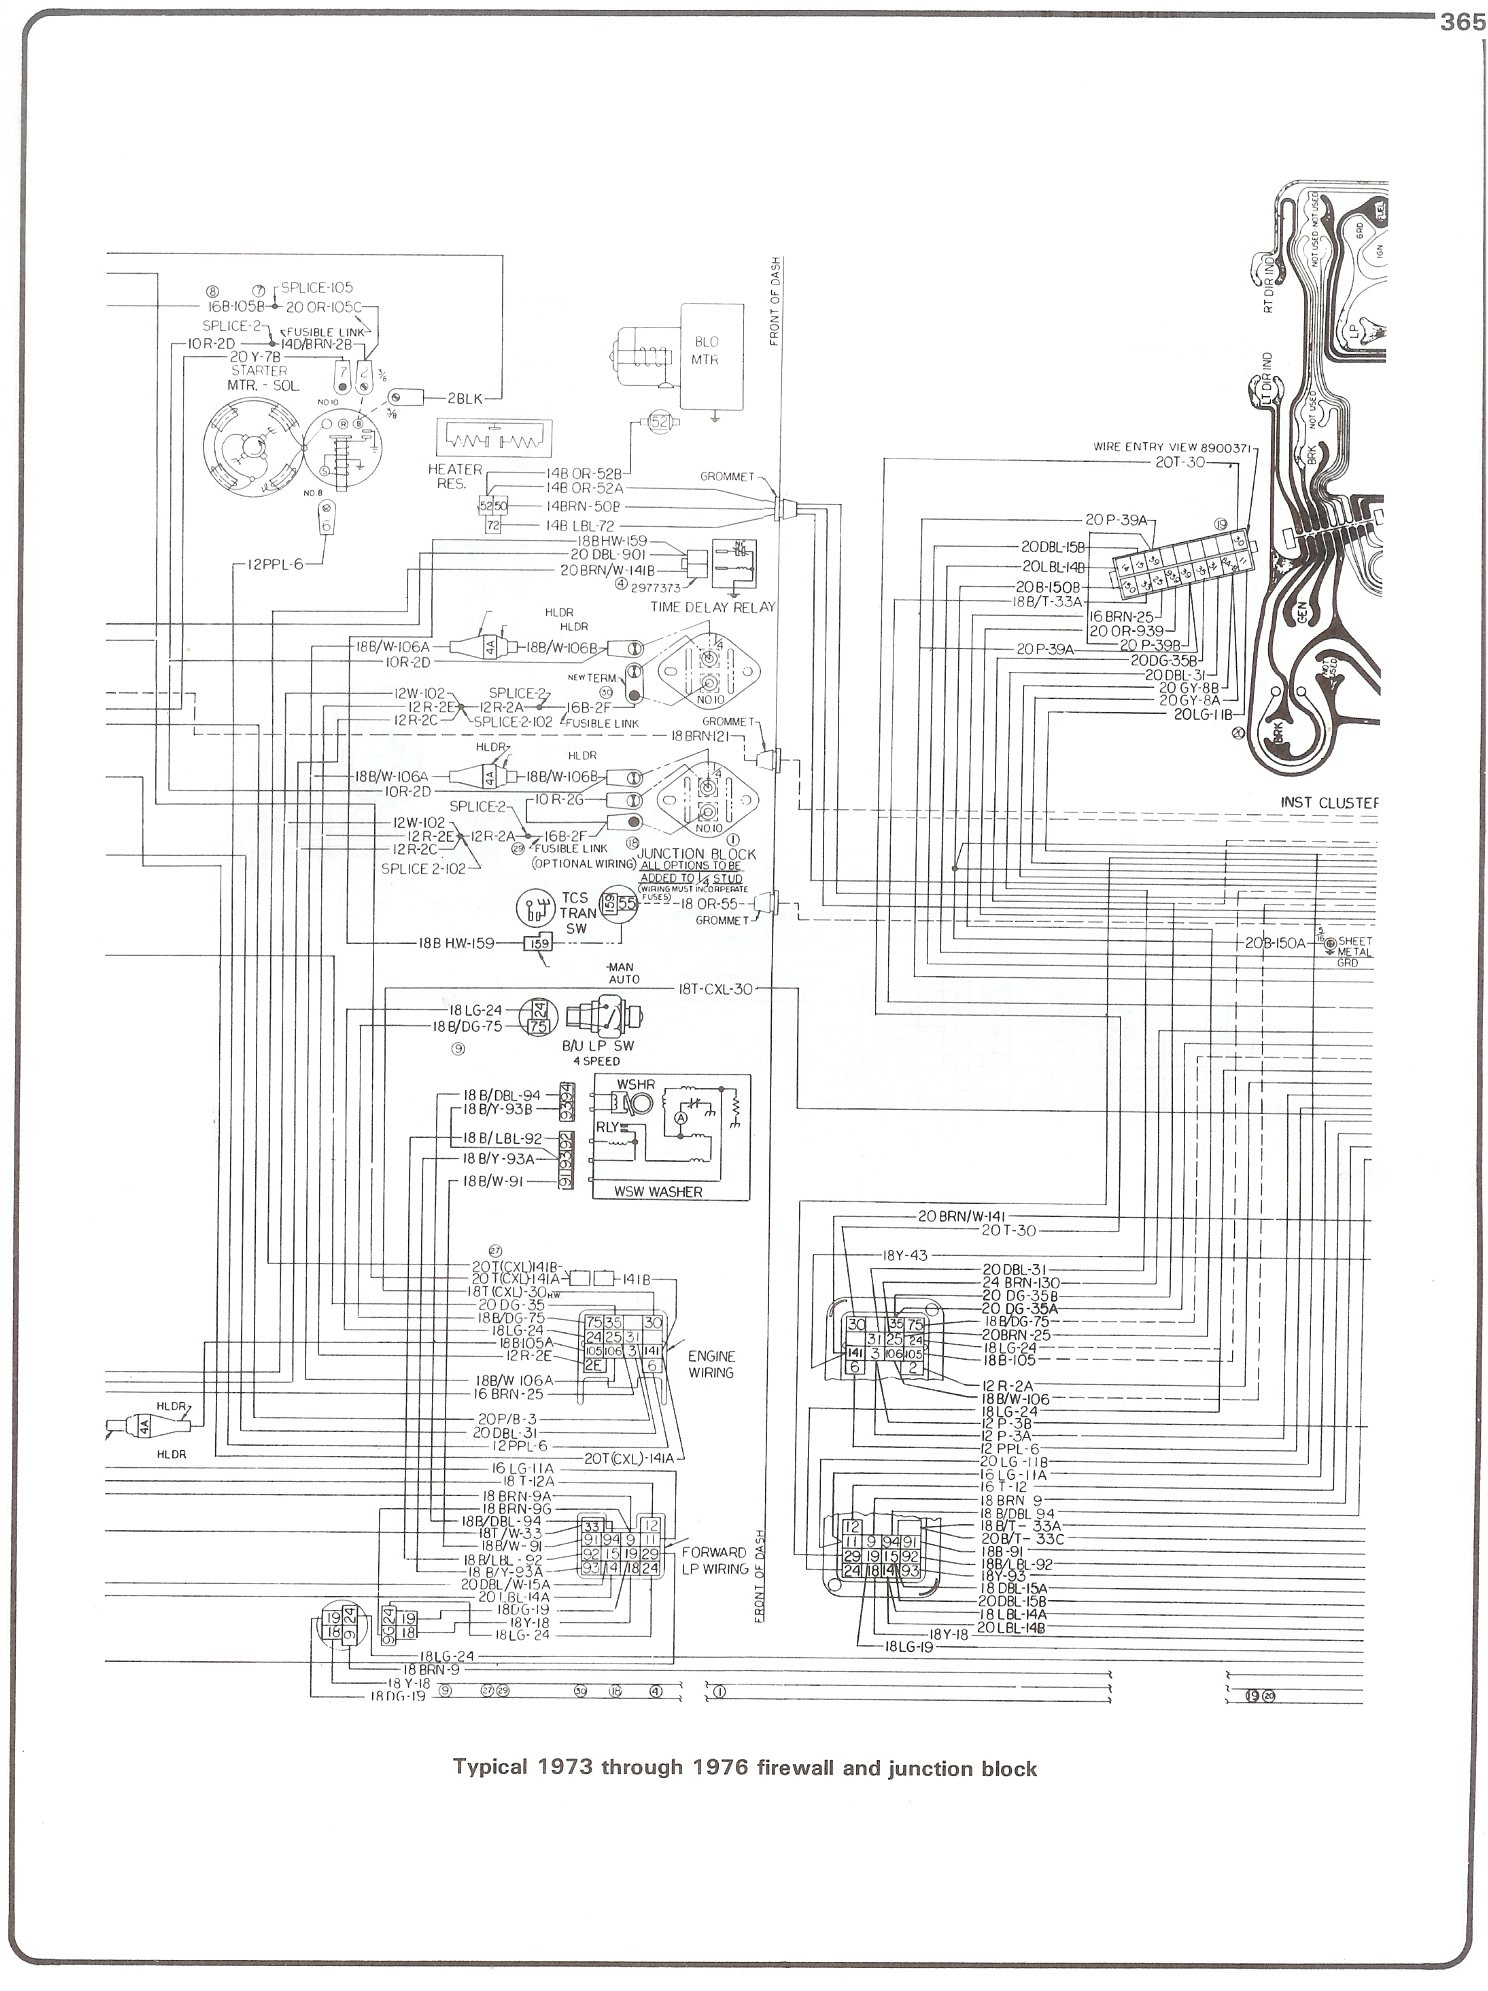 1984 Chevy Blazer Wiring Diagram List Of Schematic Circuit K5 Fuse Box Complete 73 87 Diagrams Rh Forum 87chevytrucks Com 84 S10